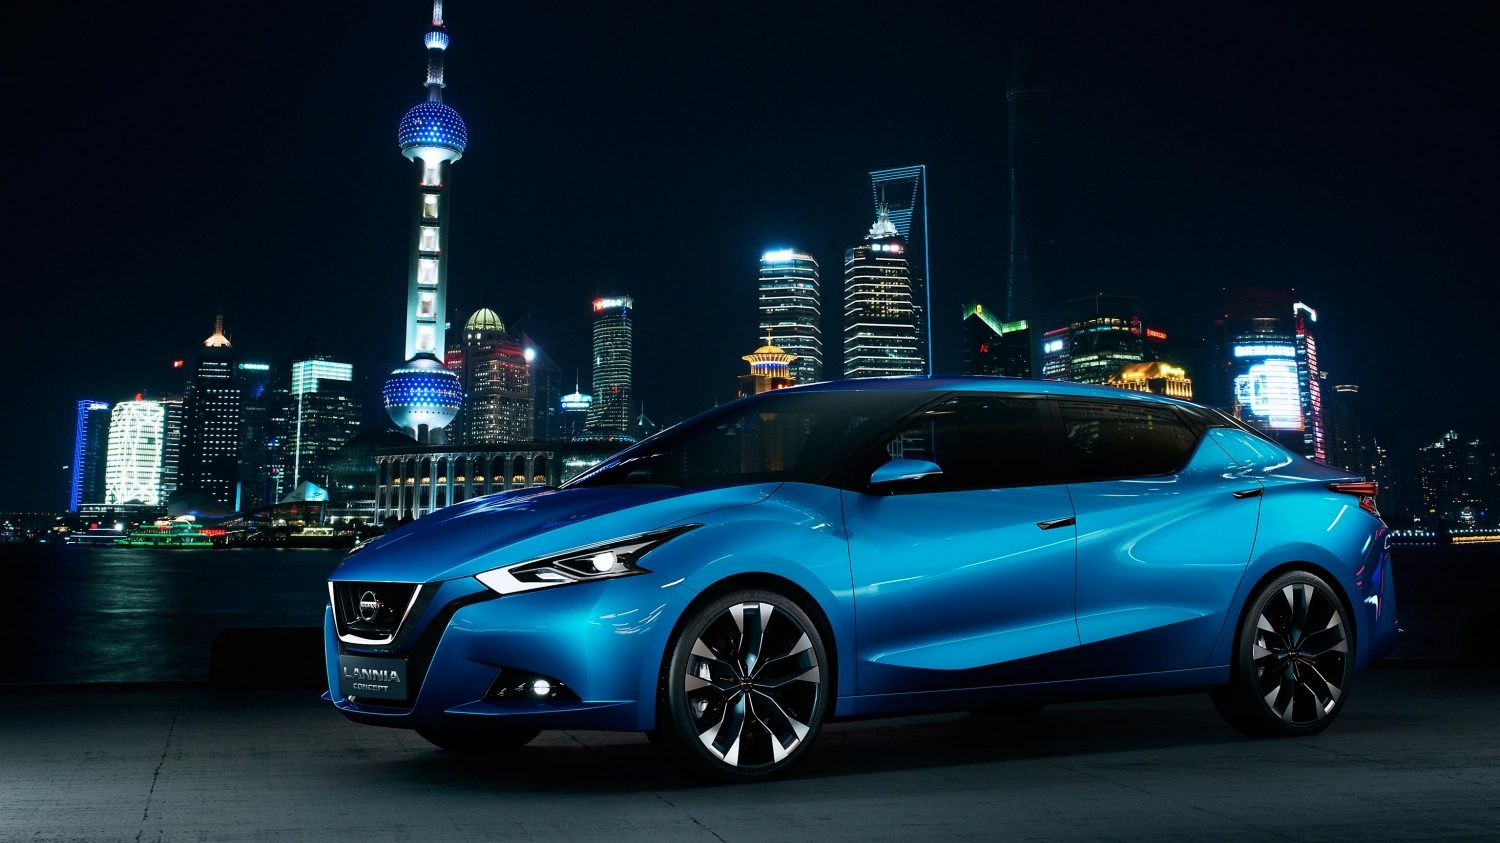 Nissan Lannia Concept in city at night